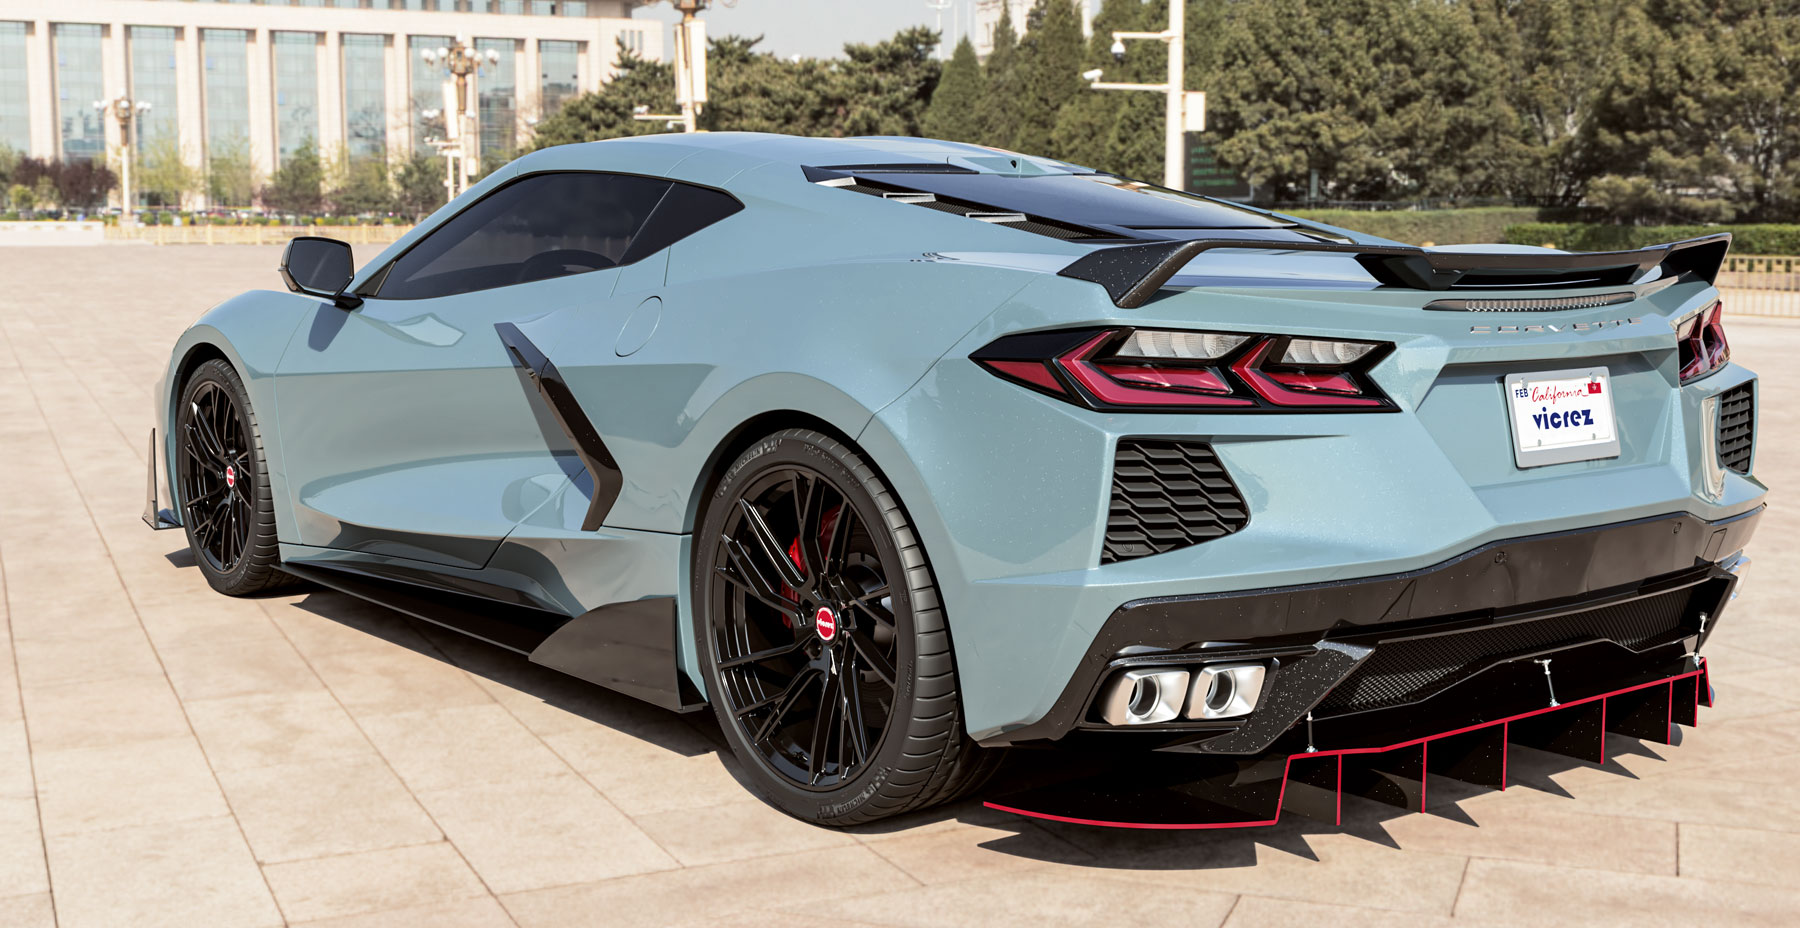 Shadow Gray Metallic Corvette C8 x Vicrez VYF Forged Wheels  (Finished in Gloss Black)